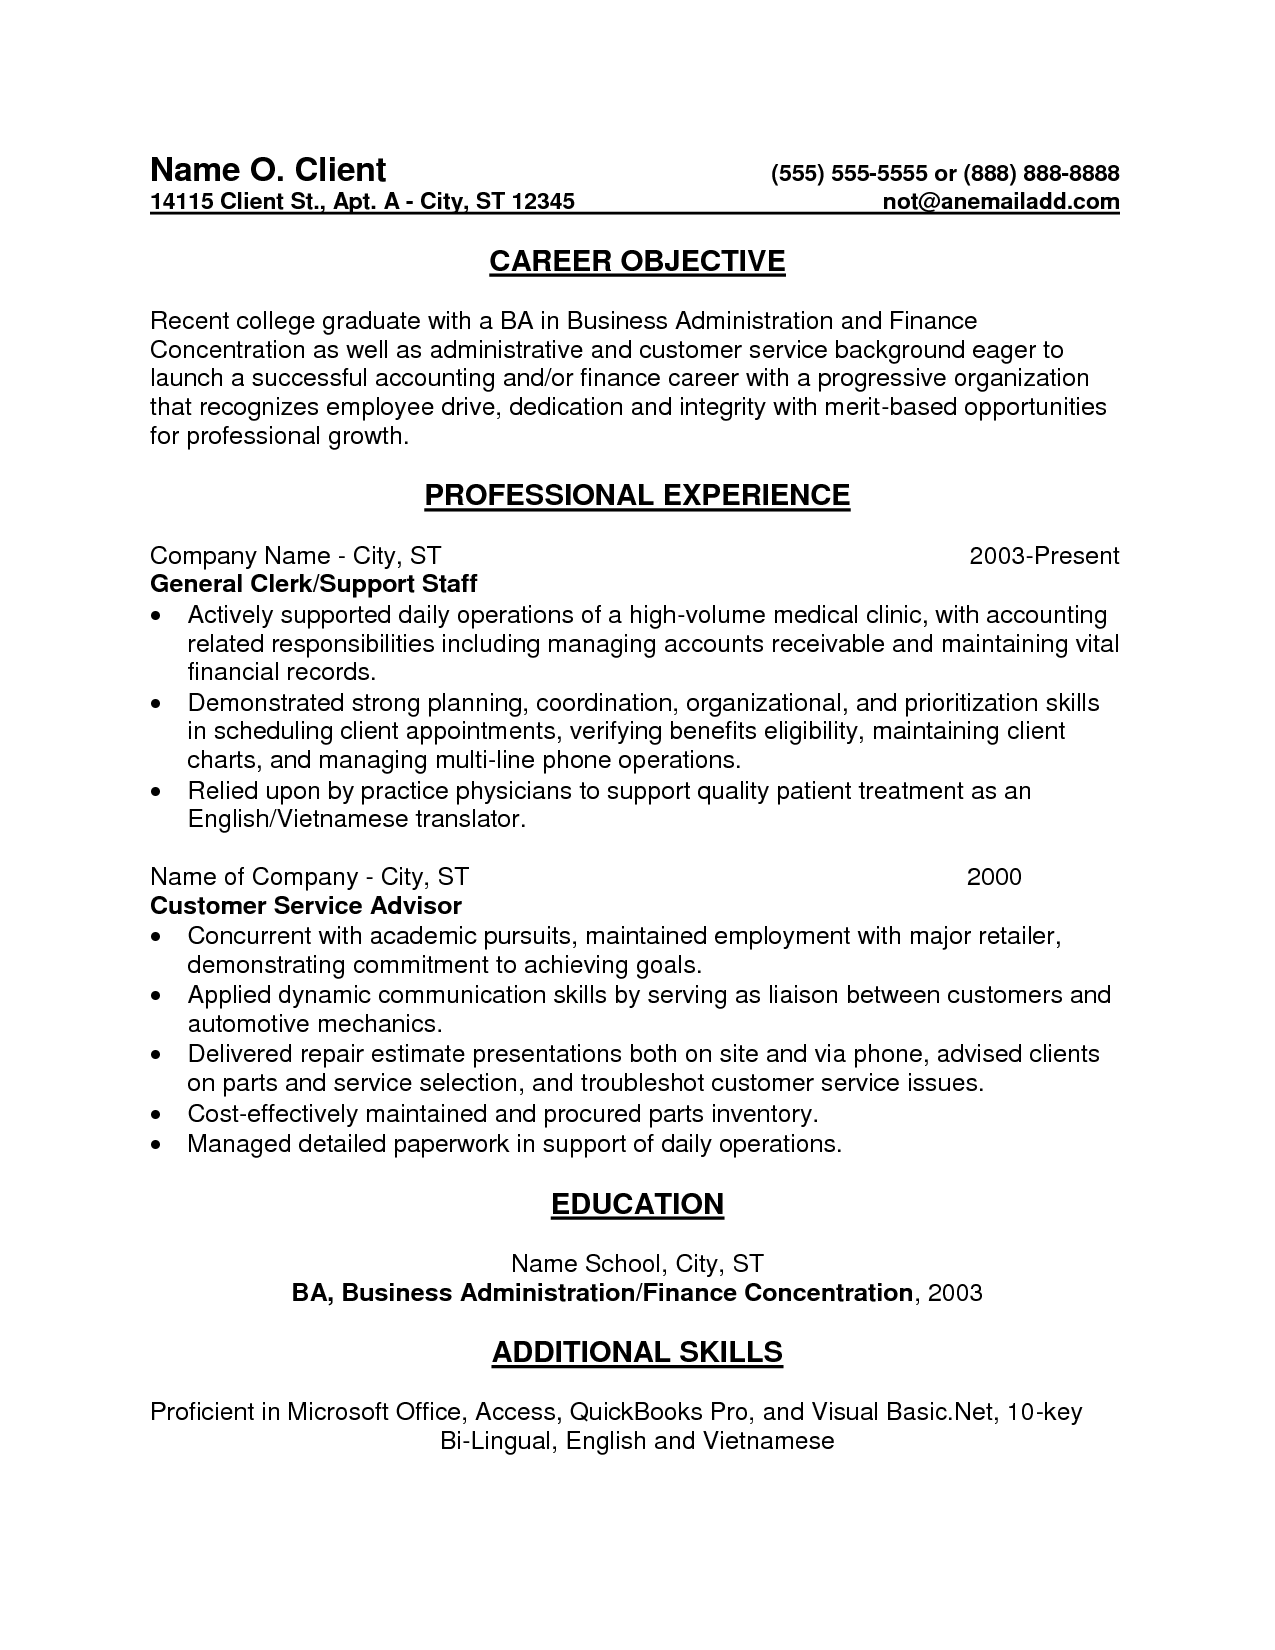 Entry Level Bookkeeper Resume Sample - http://www.resumecareer.info ...